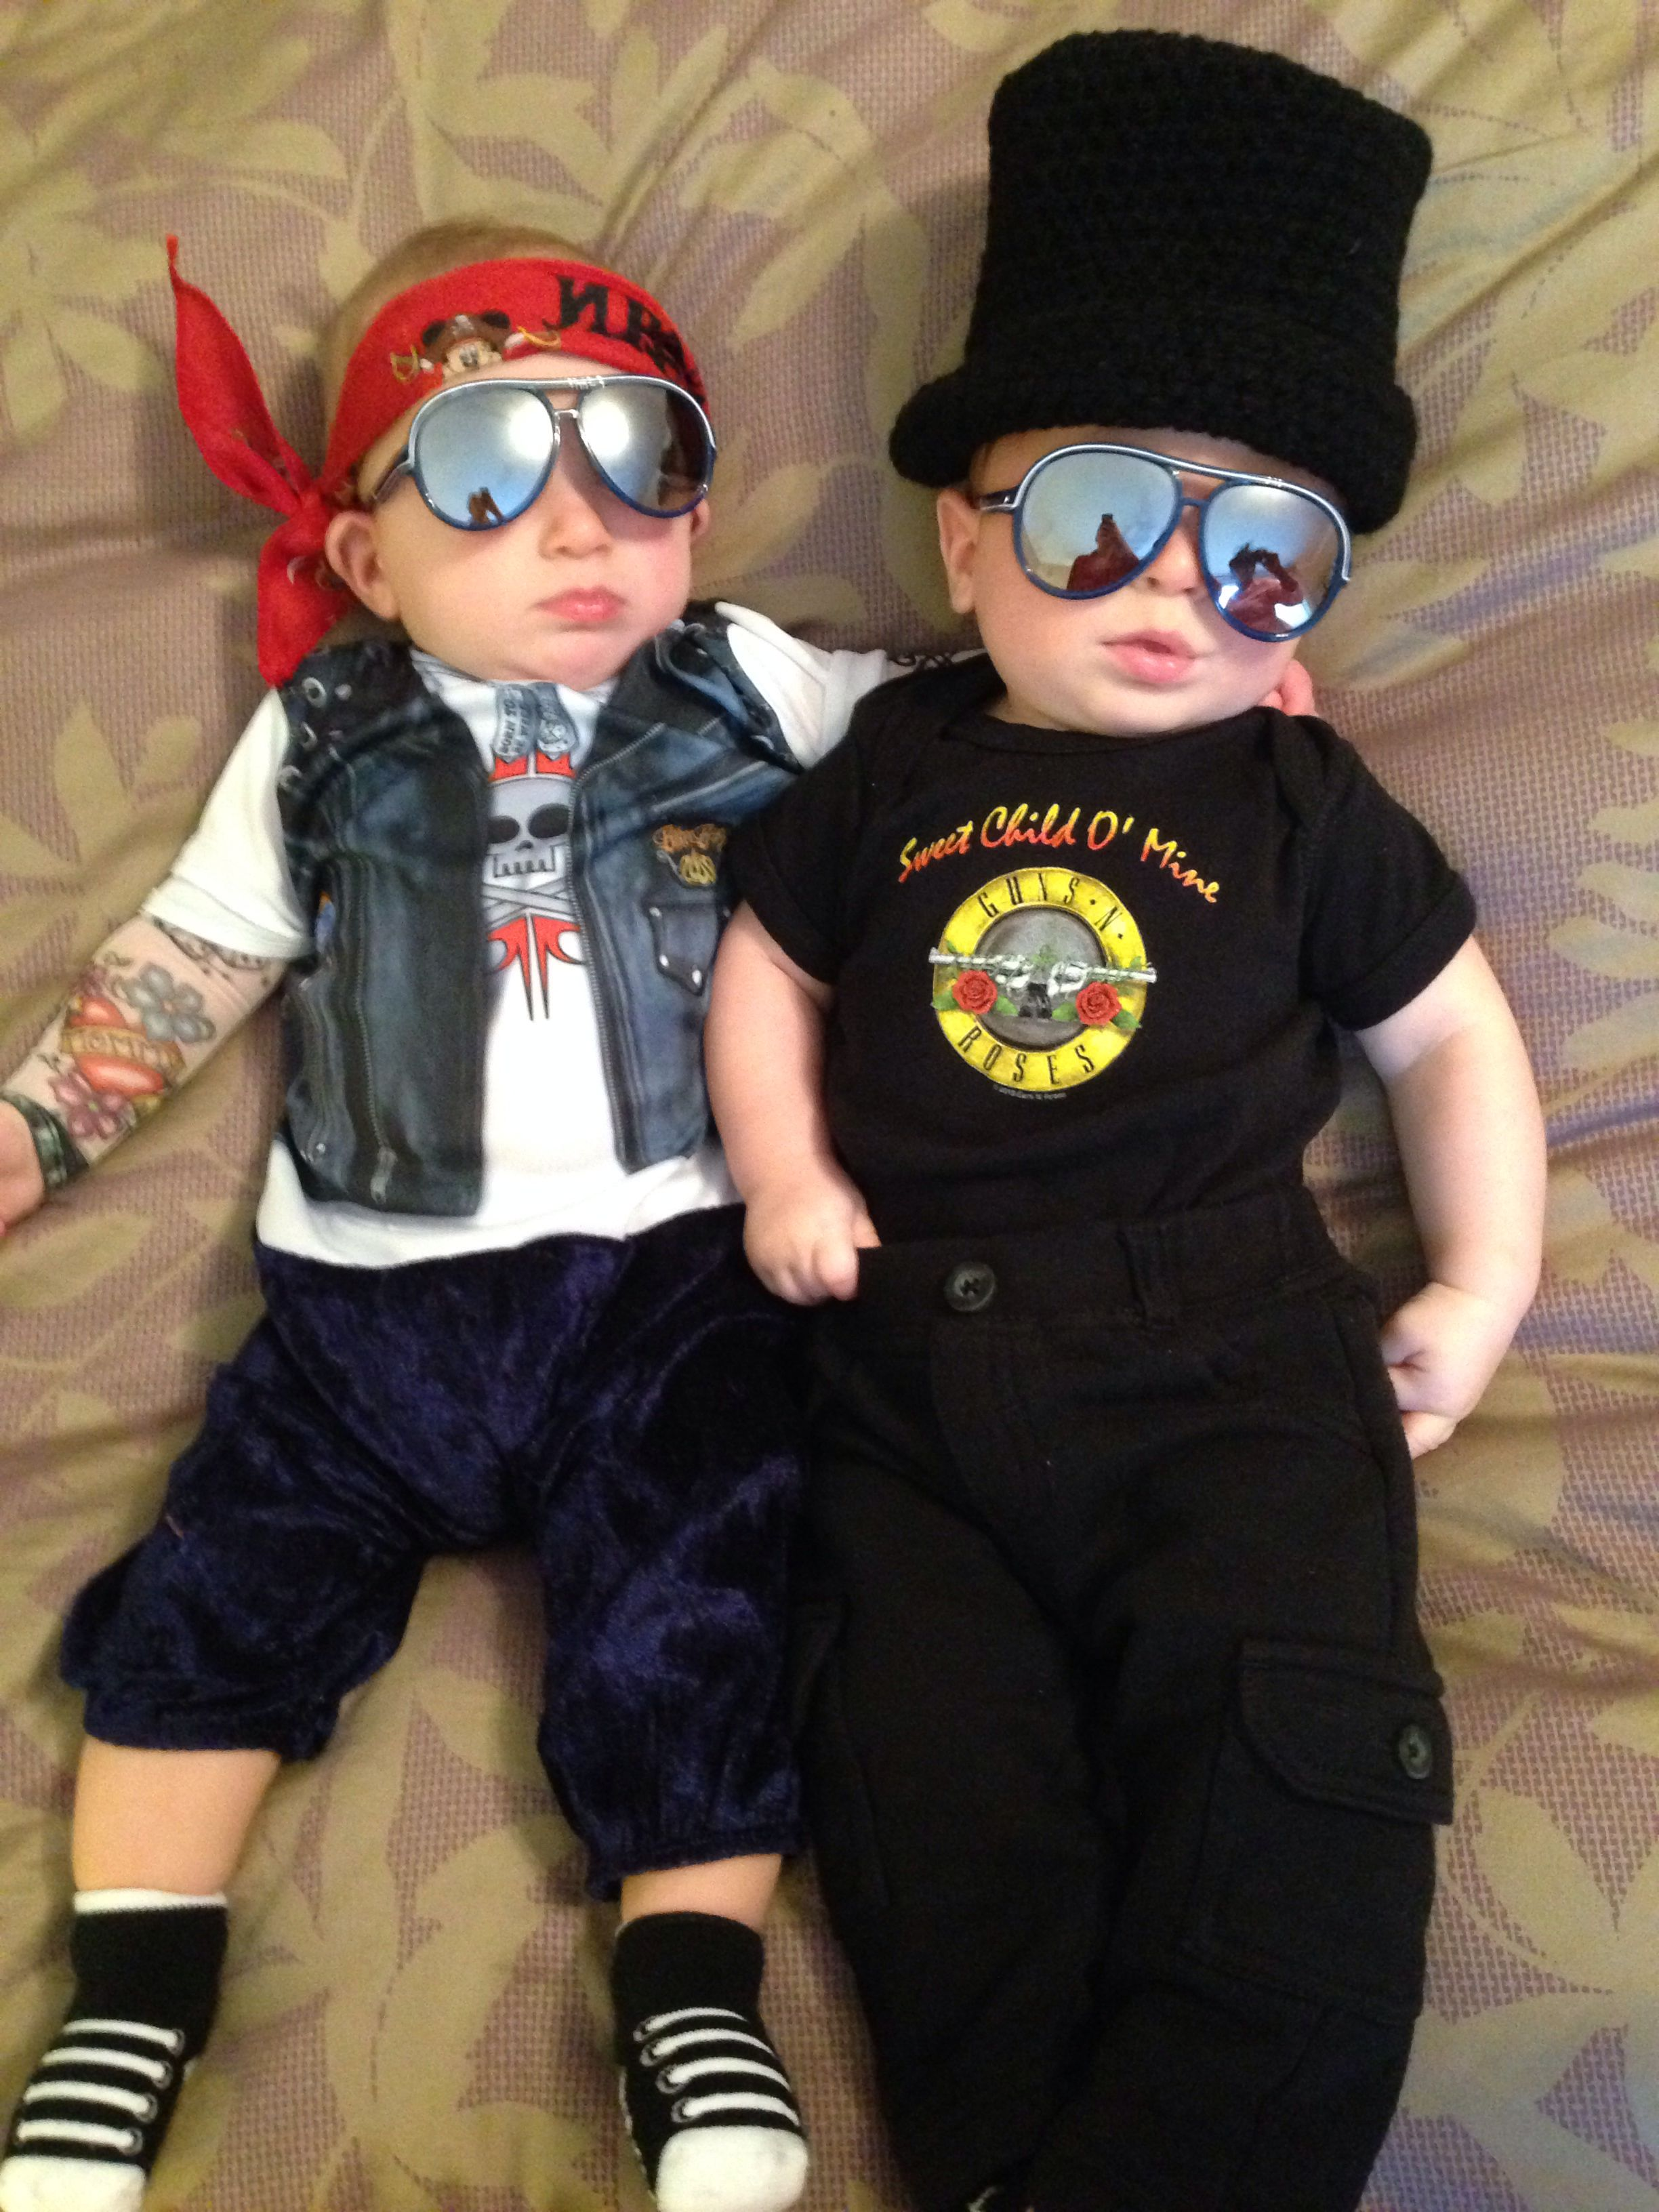 Baby Guns n Roses--Axl Rose and Slash. Twin boy Halloween costume ...